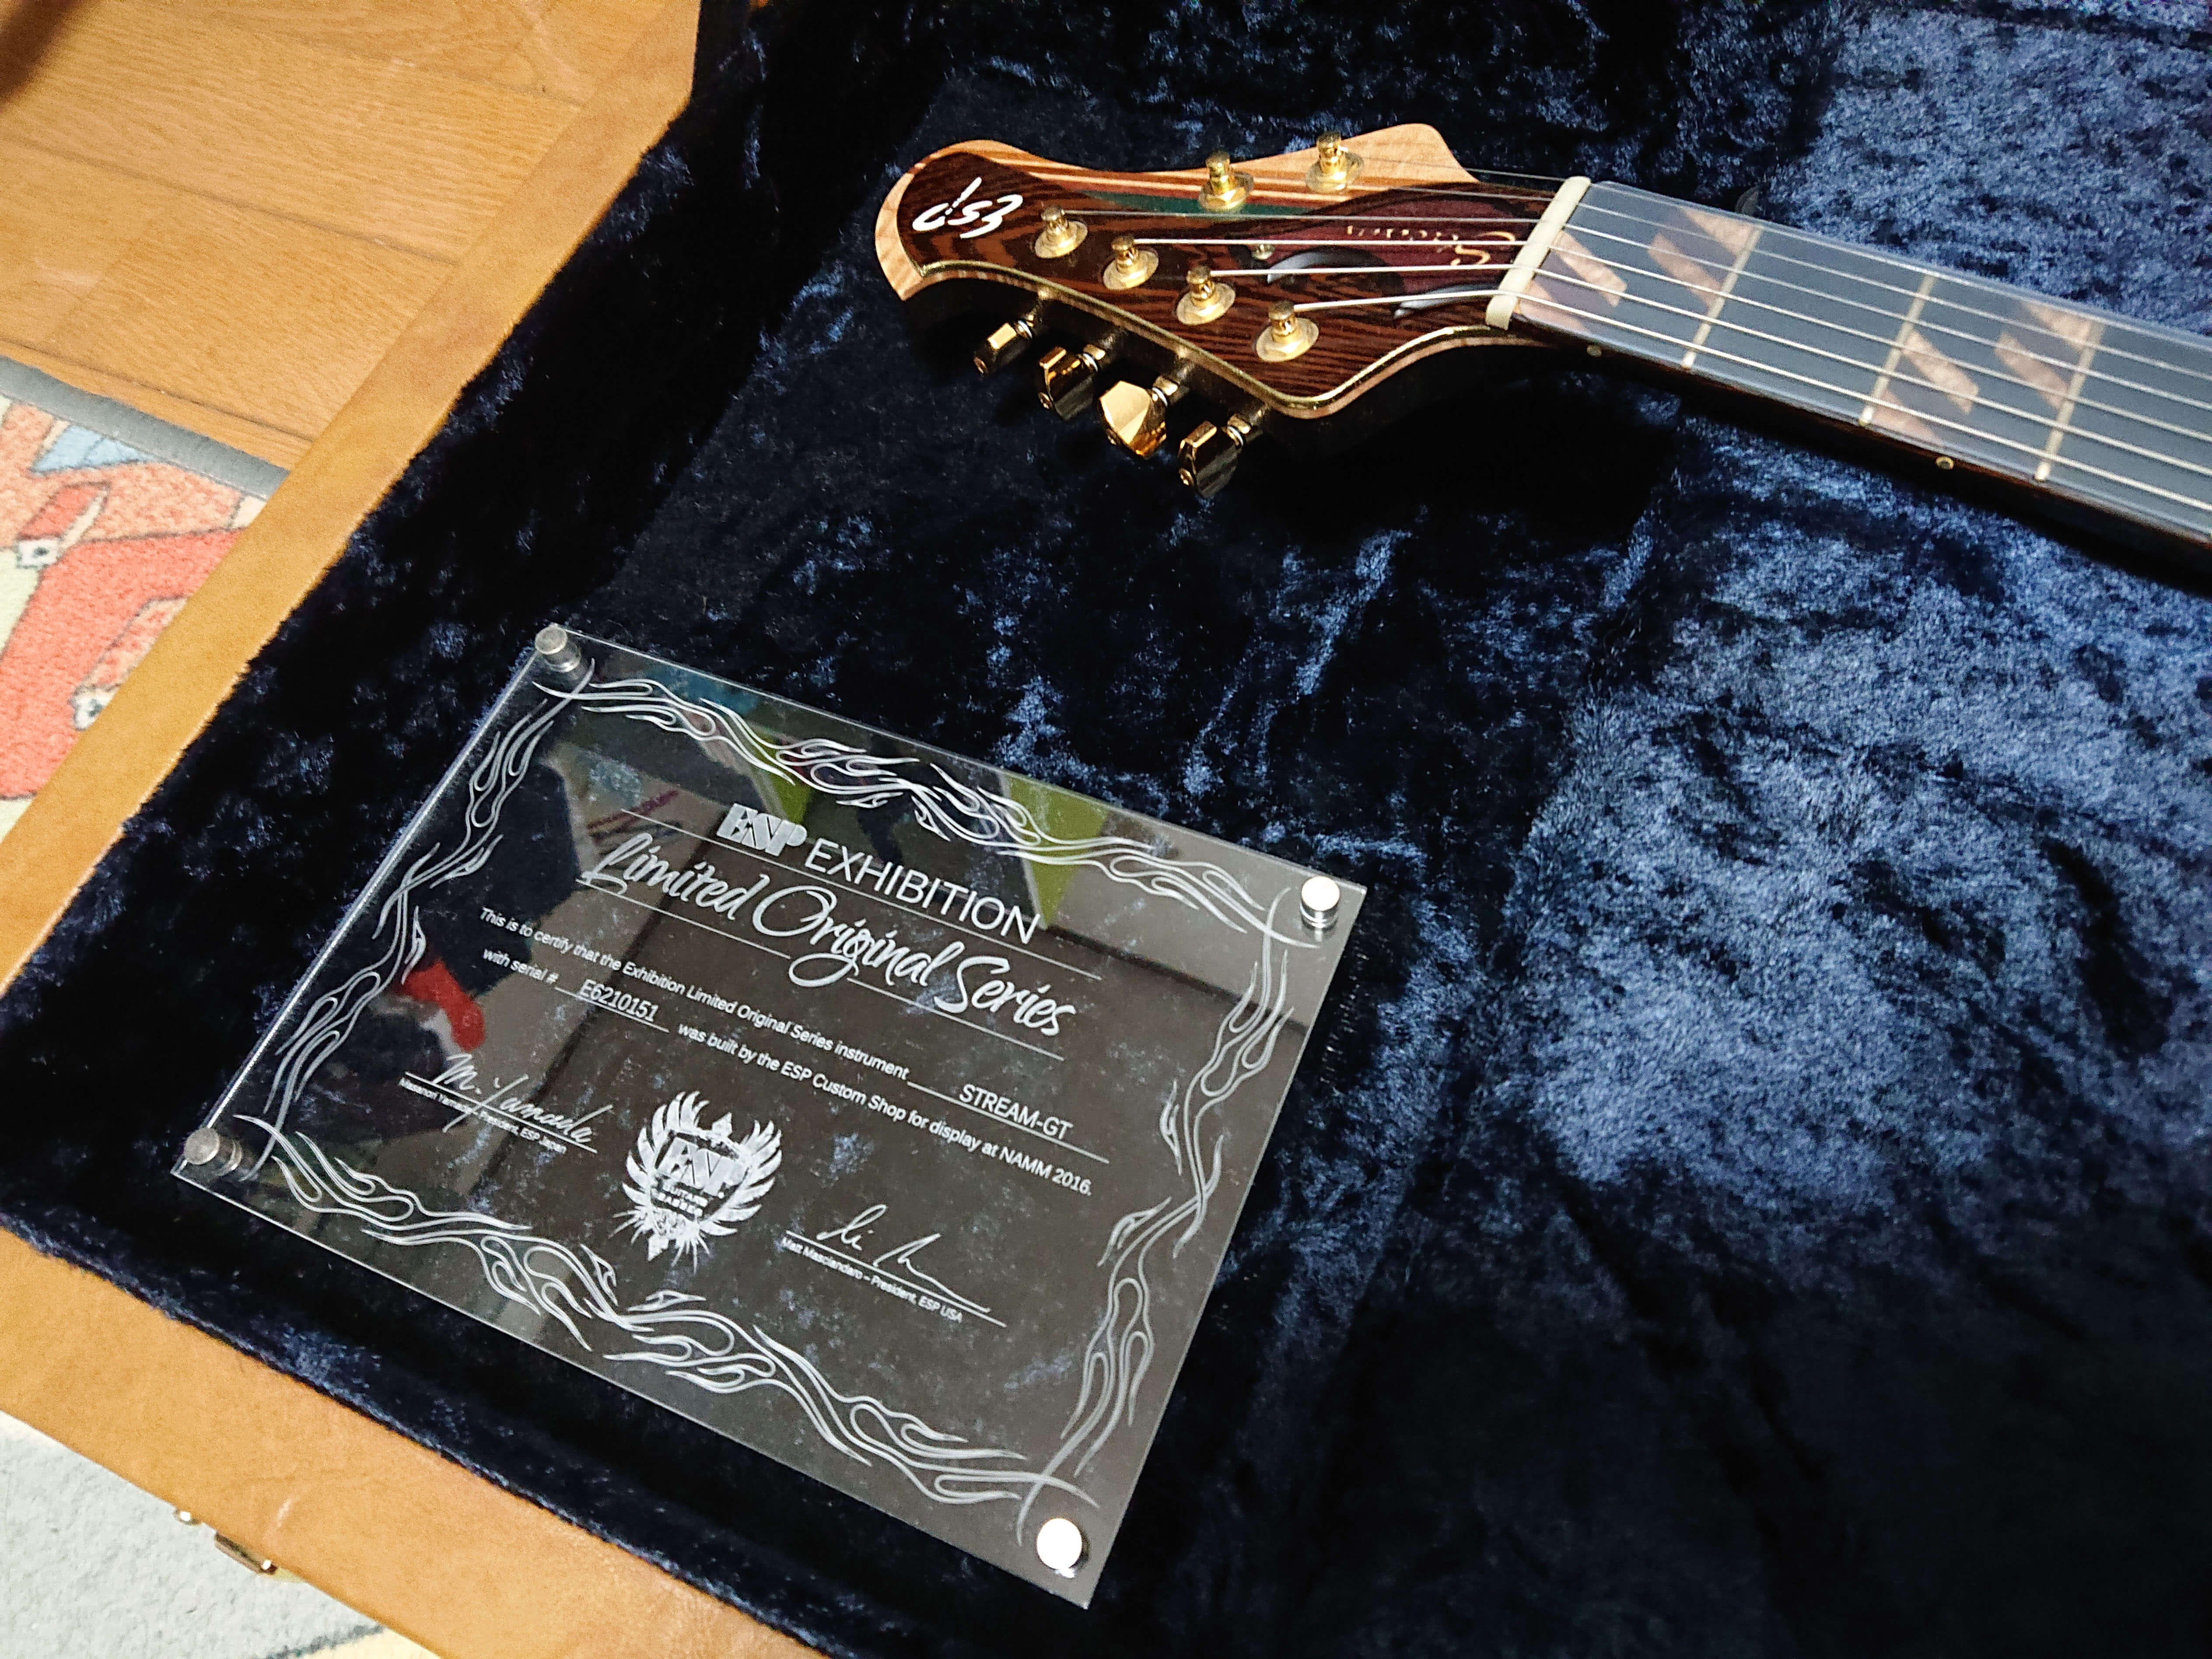 ESP Exhibition Limited 2016 / STREAM-GT